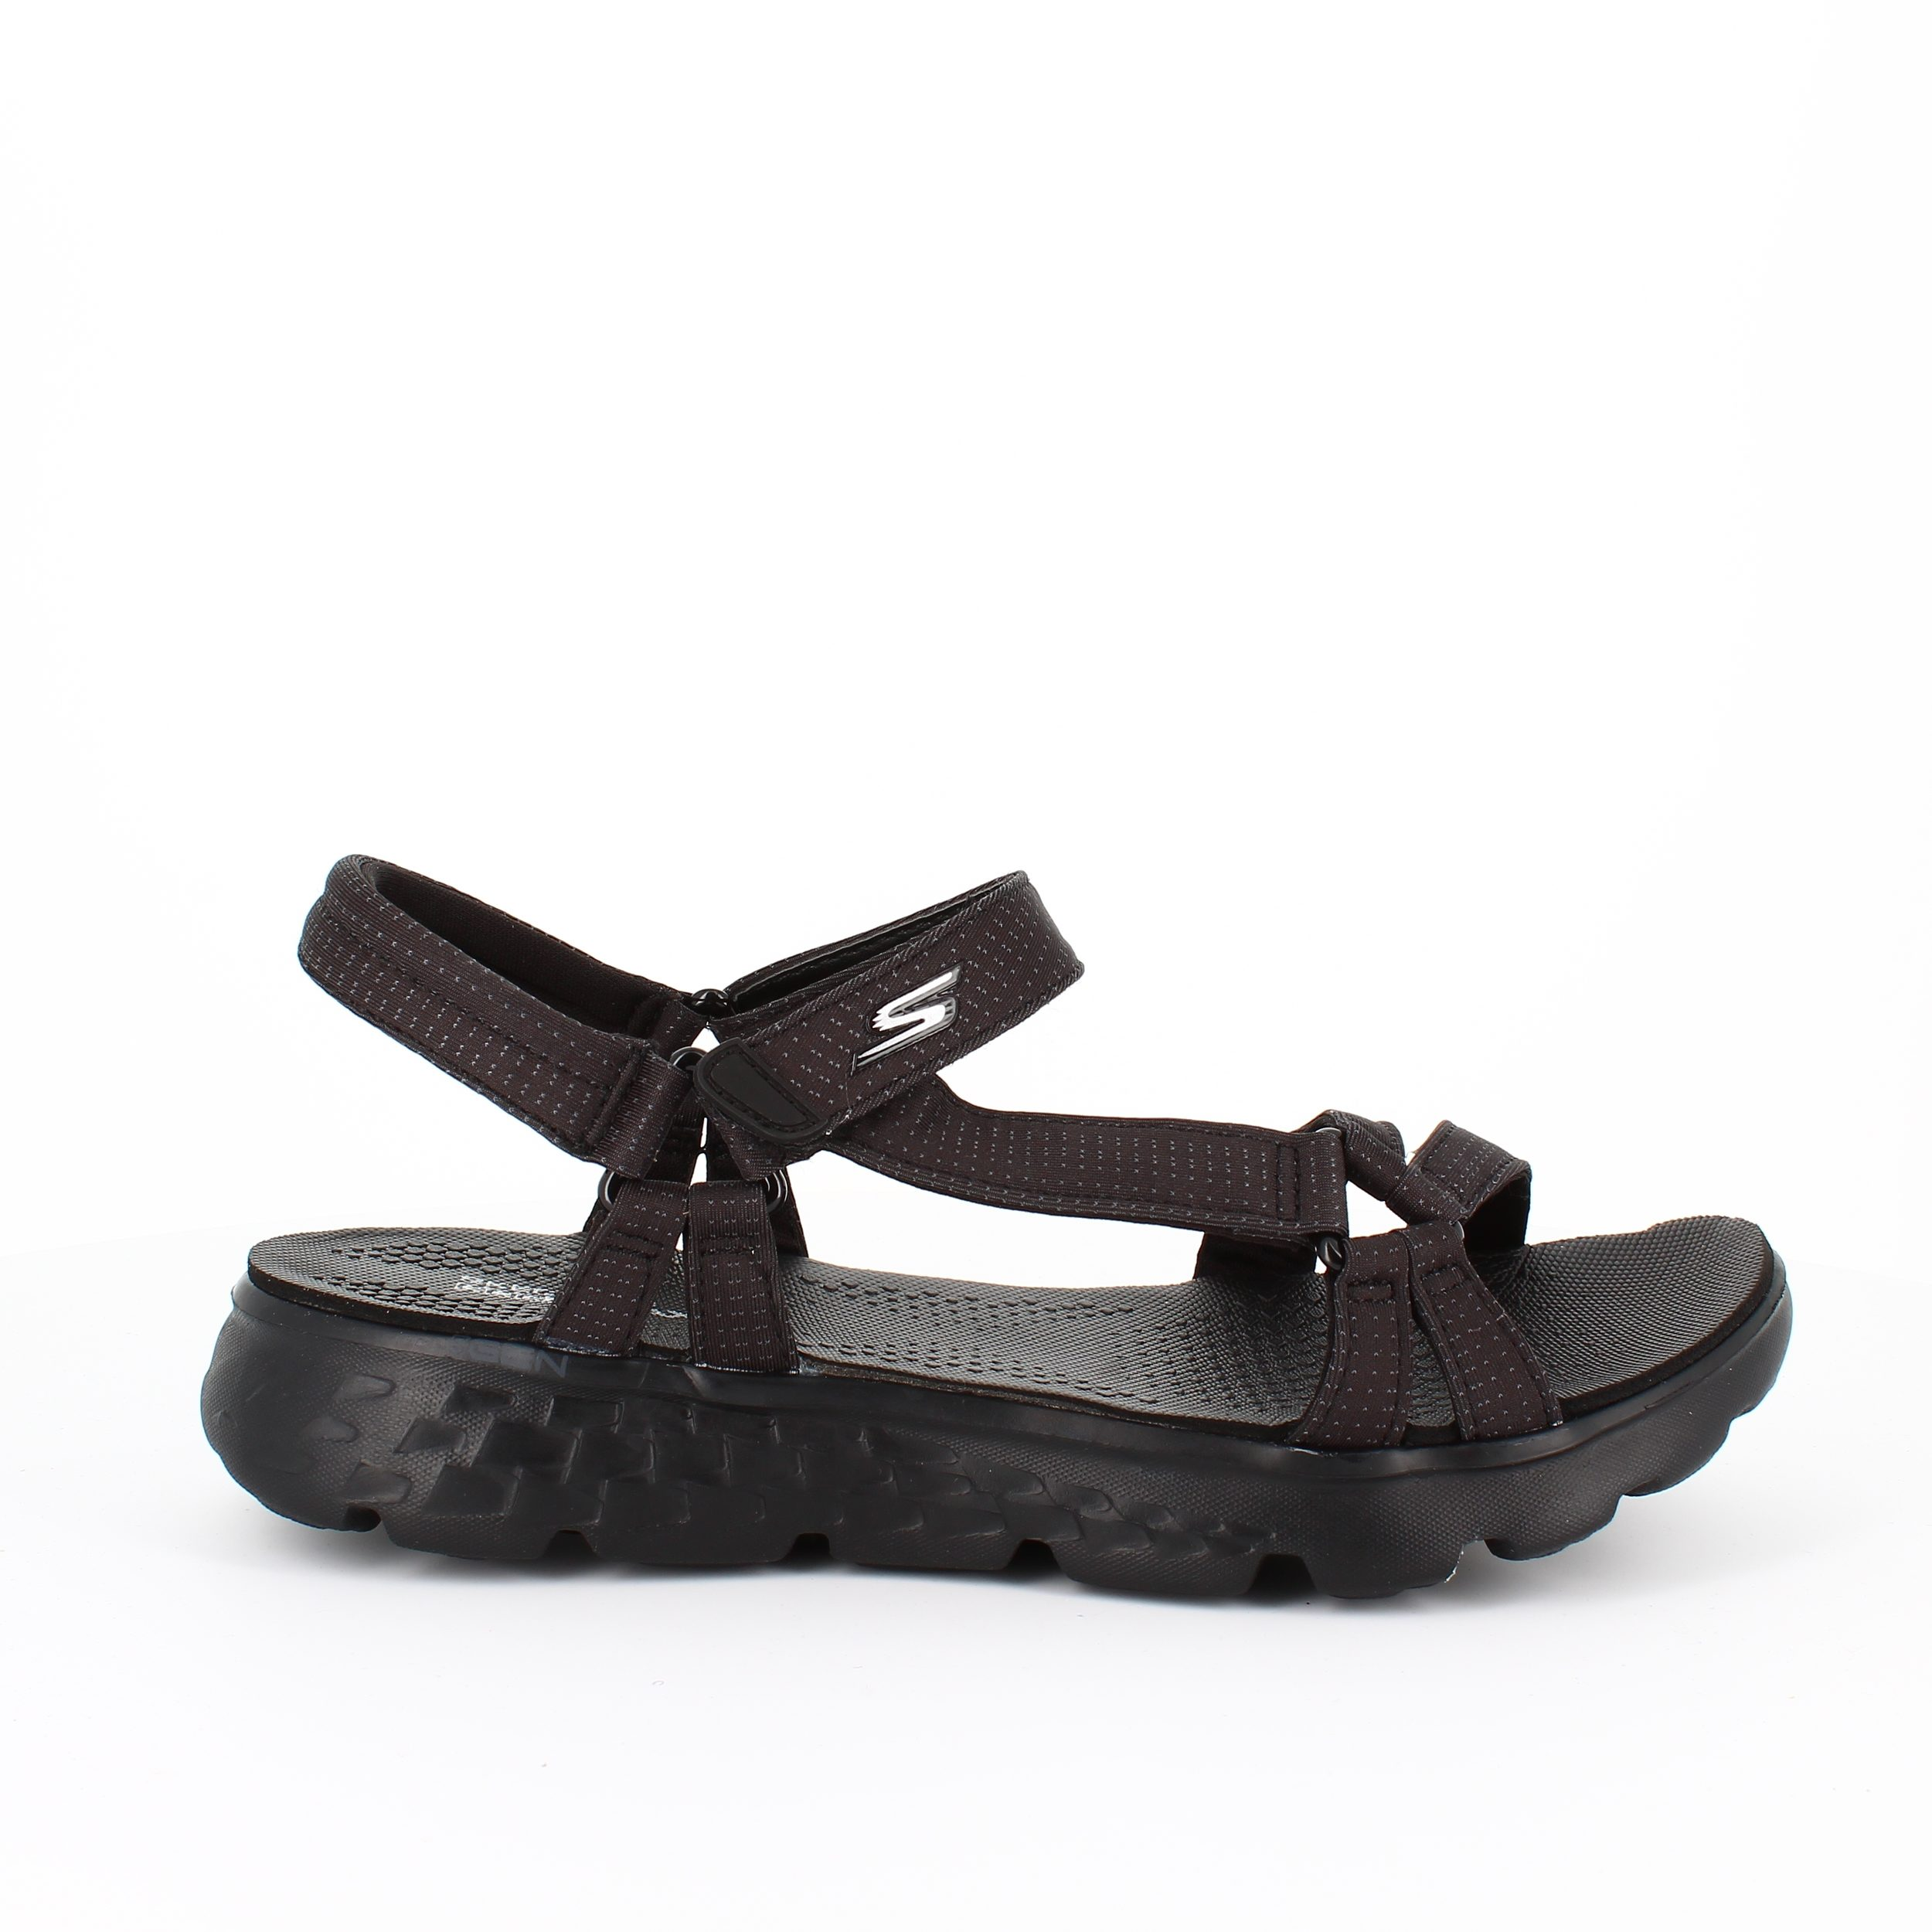 Image of   Skechers sandal sort med smalle remme - 35